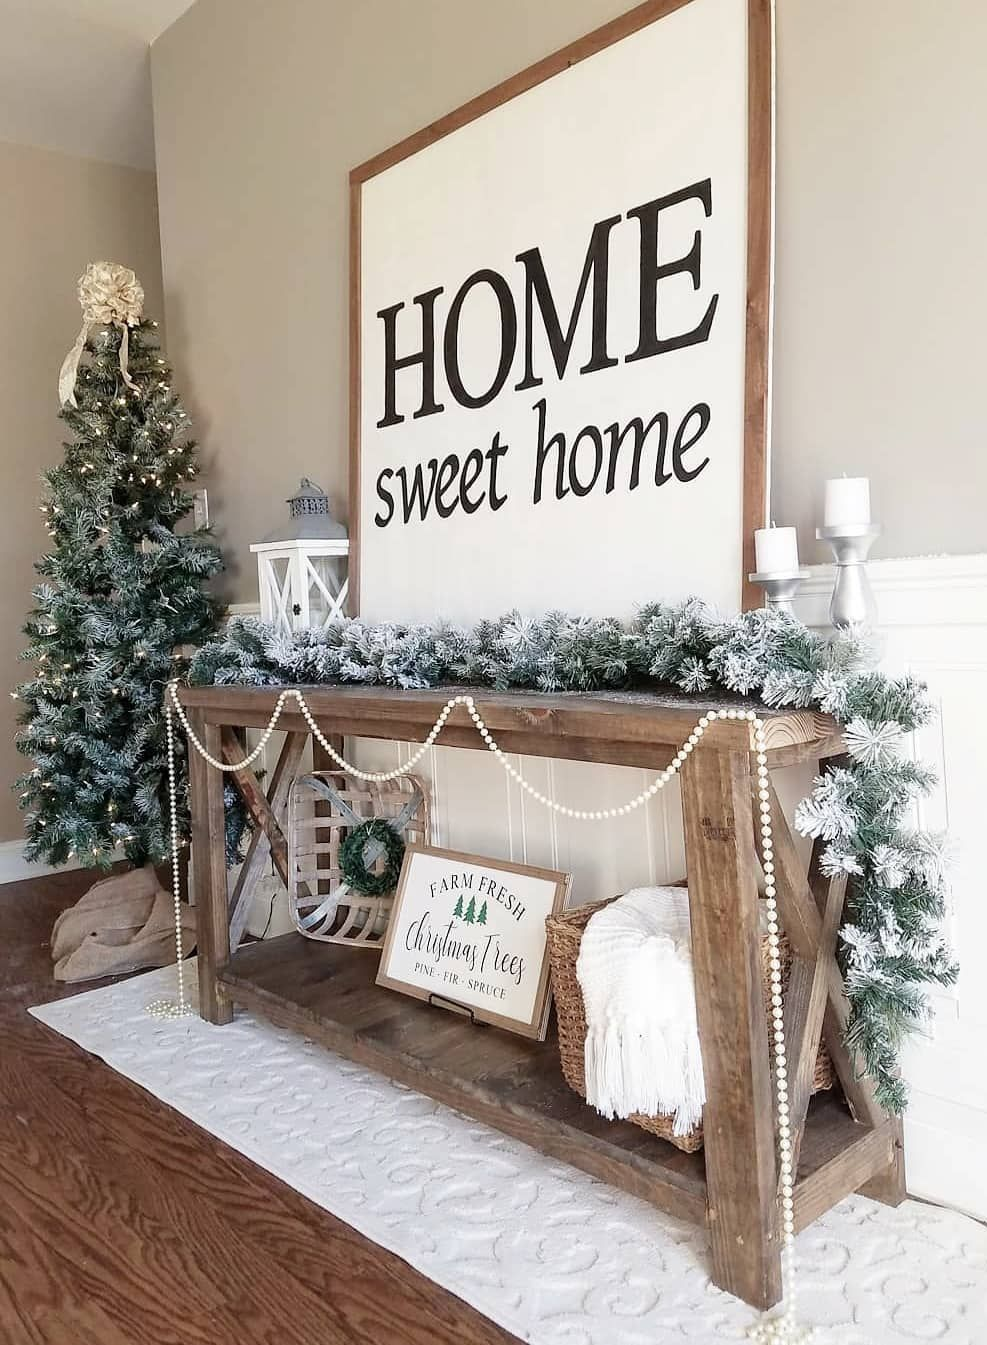 Farmhouse Christmas Entryway via @ourwintonhome #ChristmasDecor #ChristmasHome